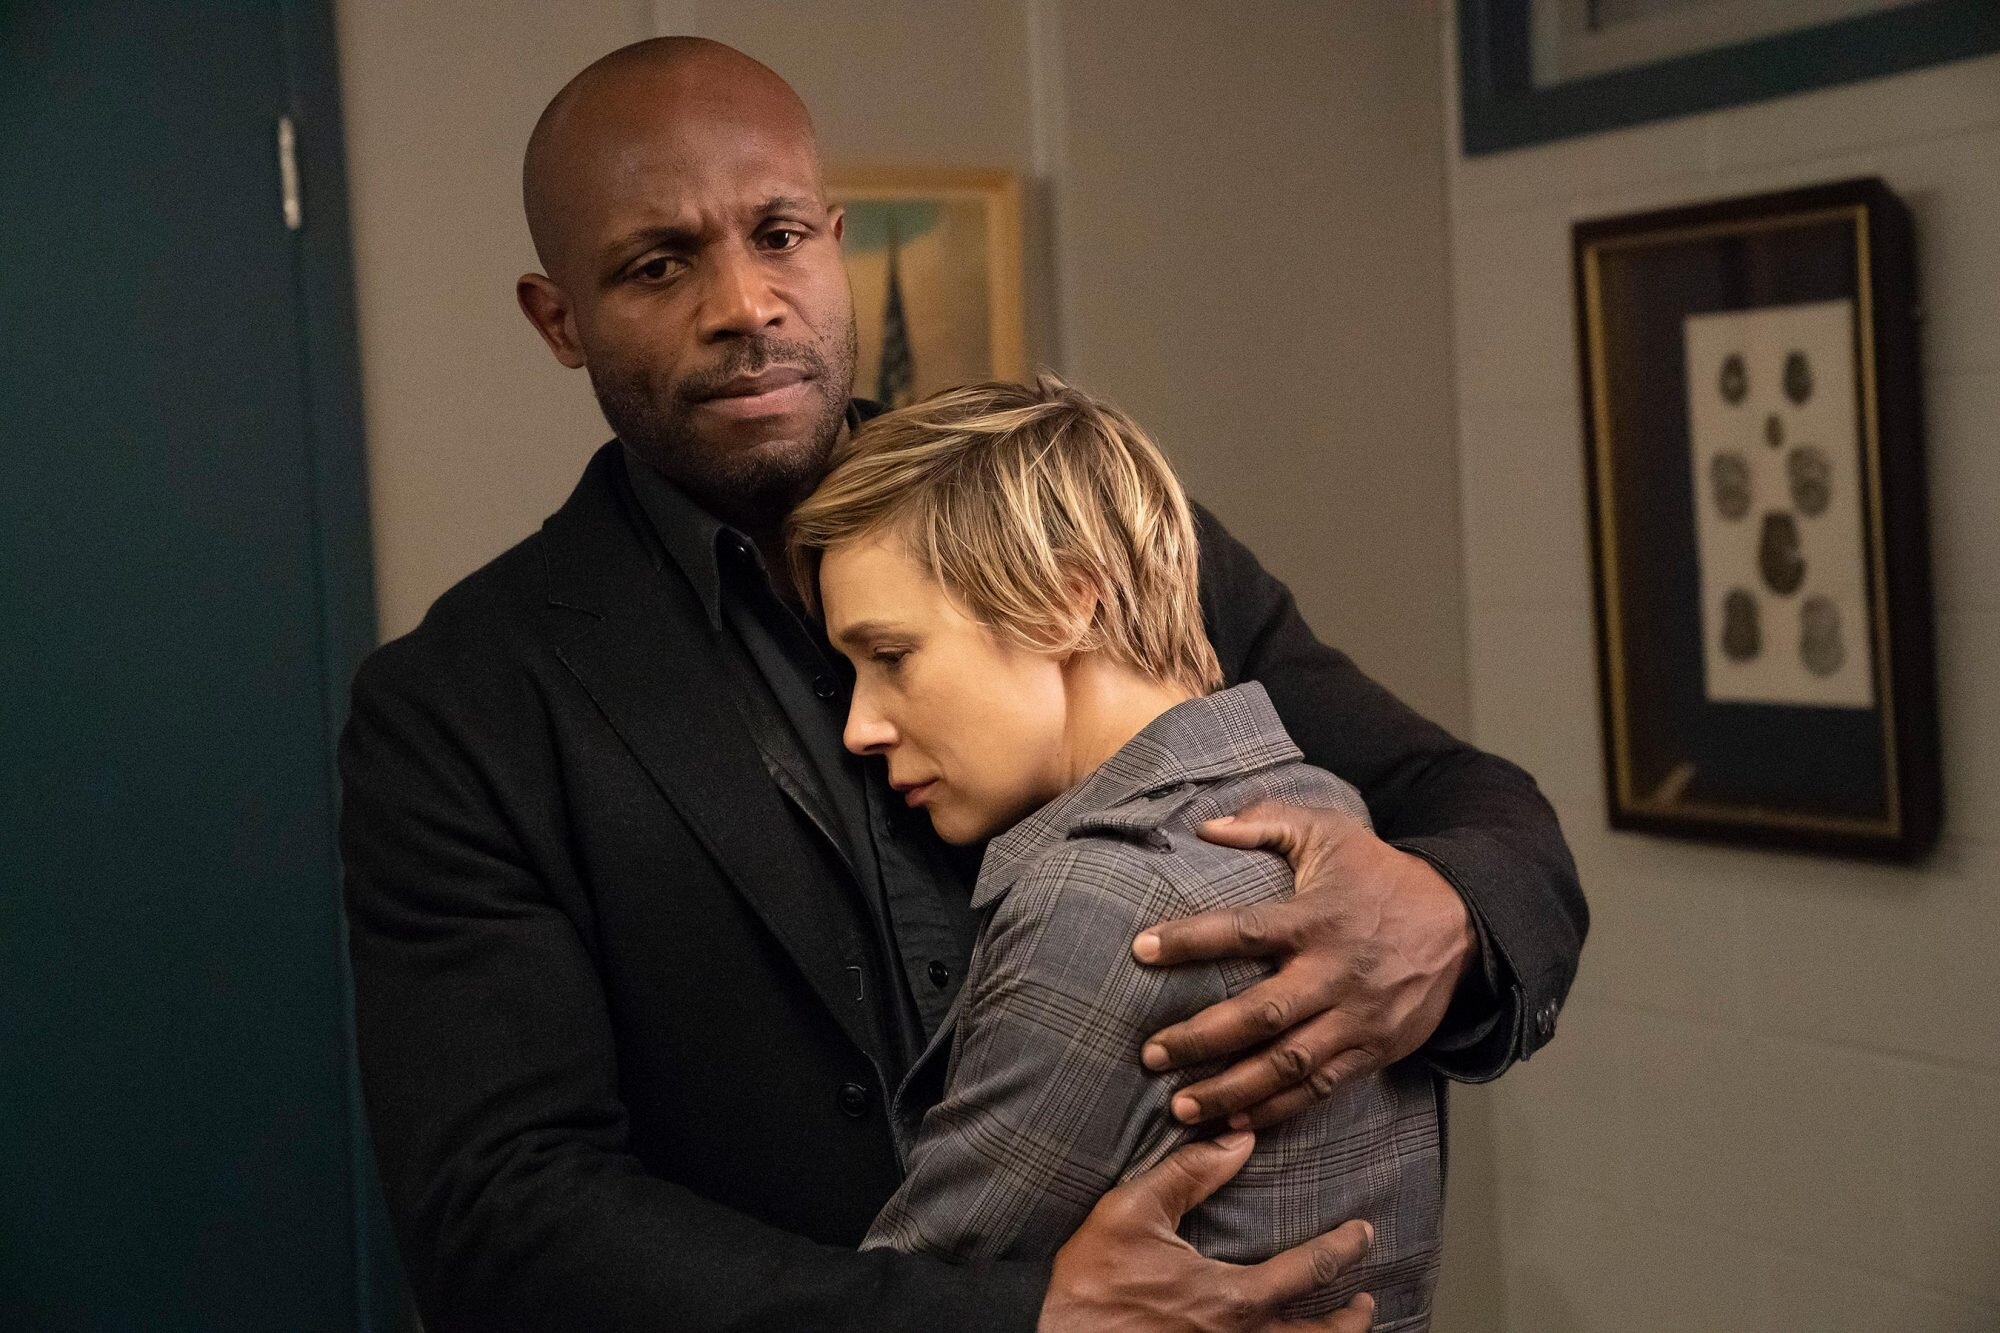 image?url=https%3A%2F%2Fstatic.onecms.io%2Fwp content%2Fuploads%2Fsites%2F6%2F2019%2F03%2Fhtgawm 2000 - Who Died In How To Get Away With A Murderer Season 5